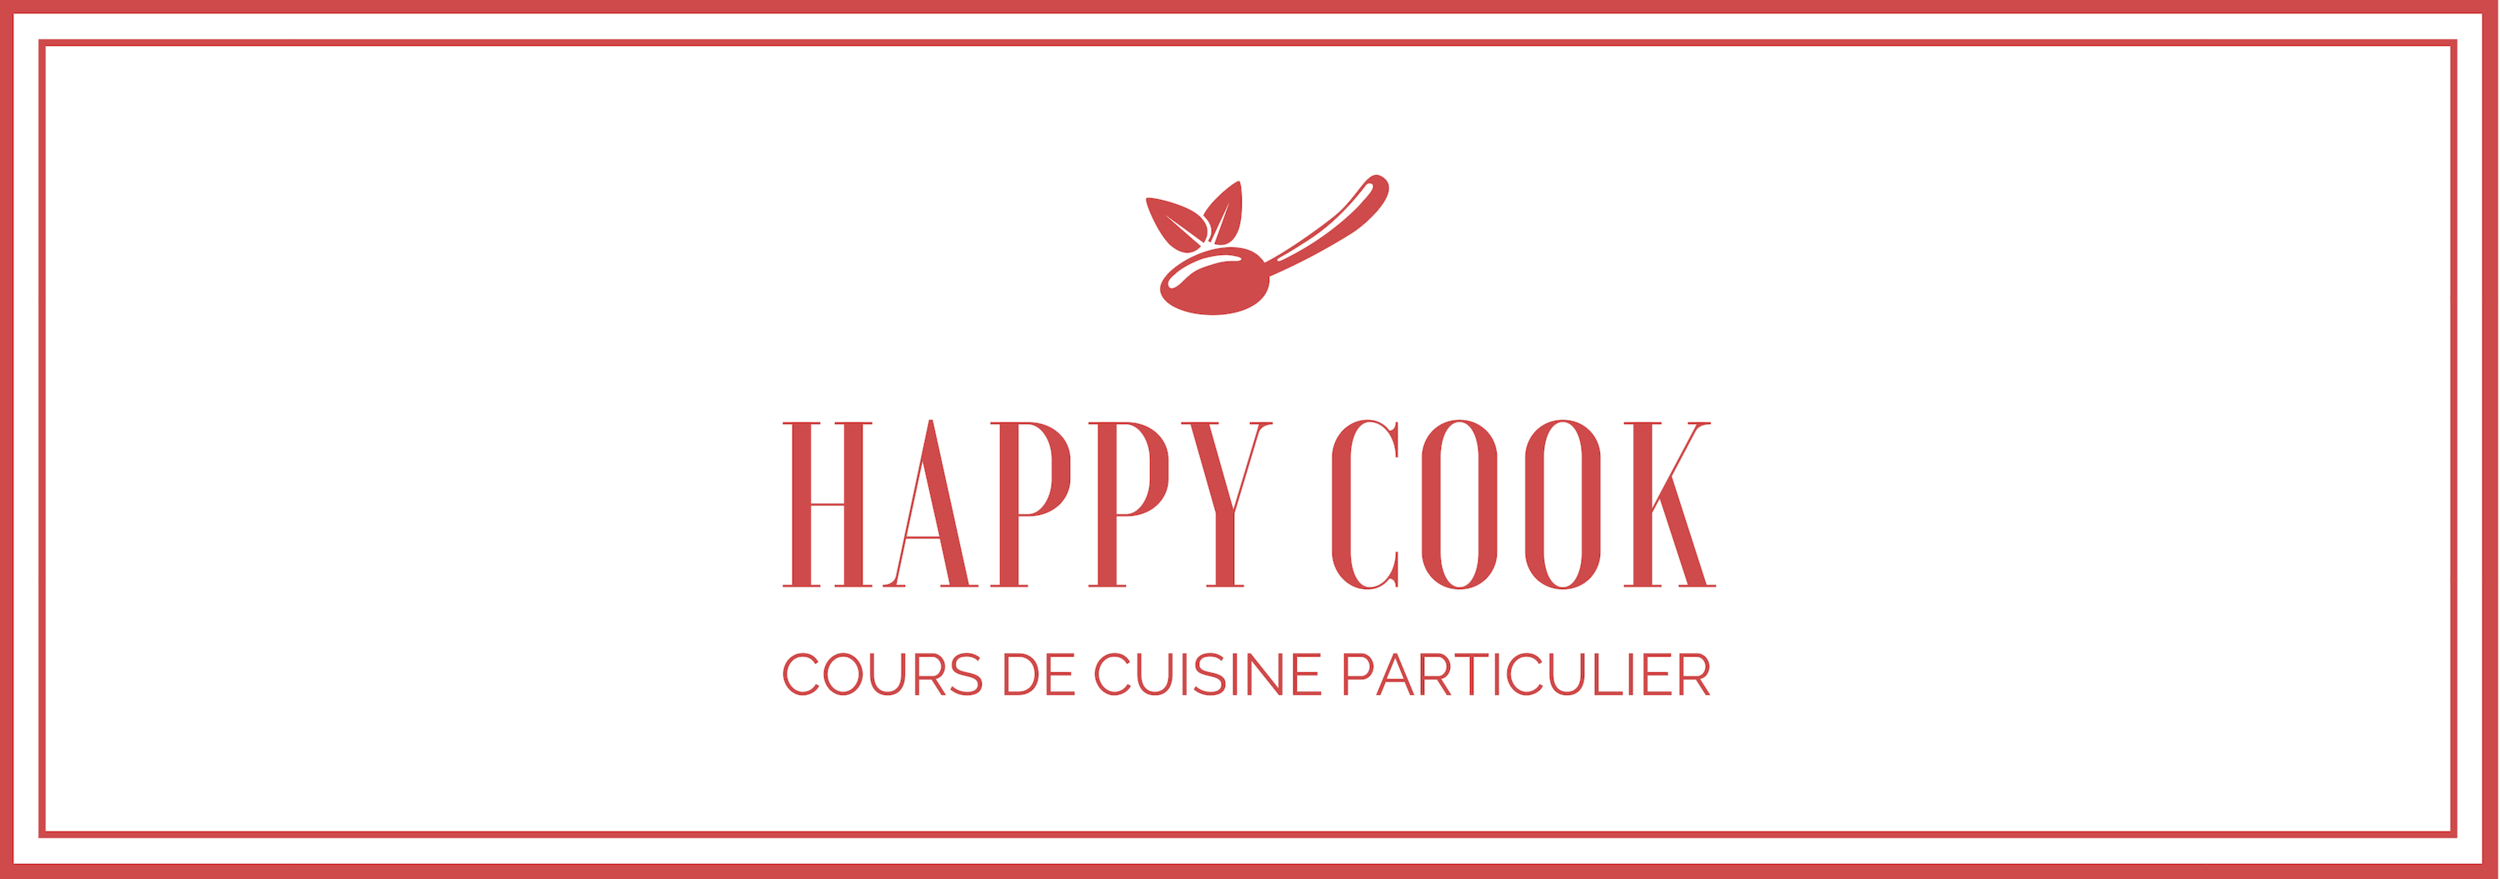 Happy cook banner.png